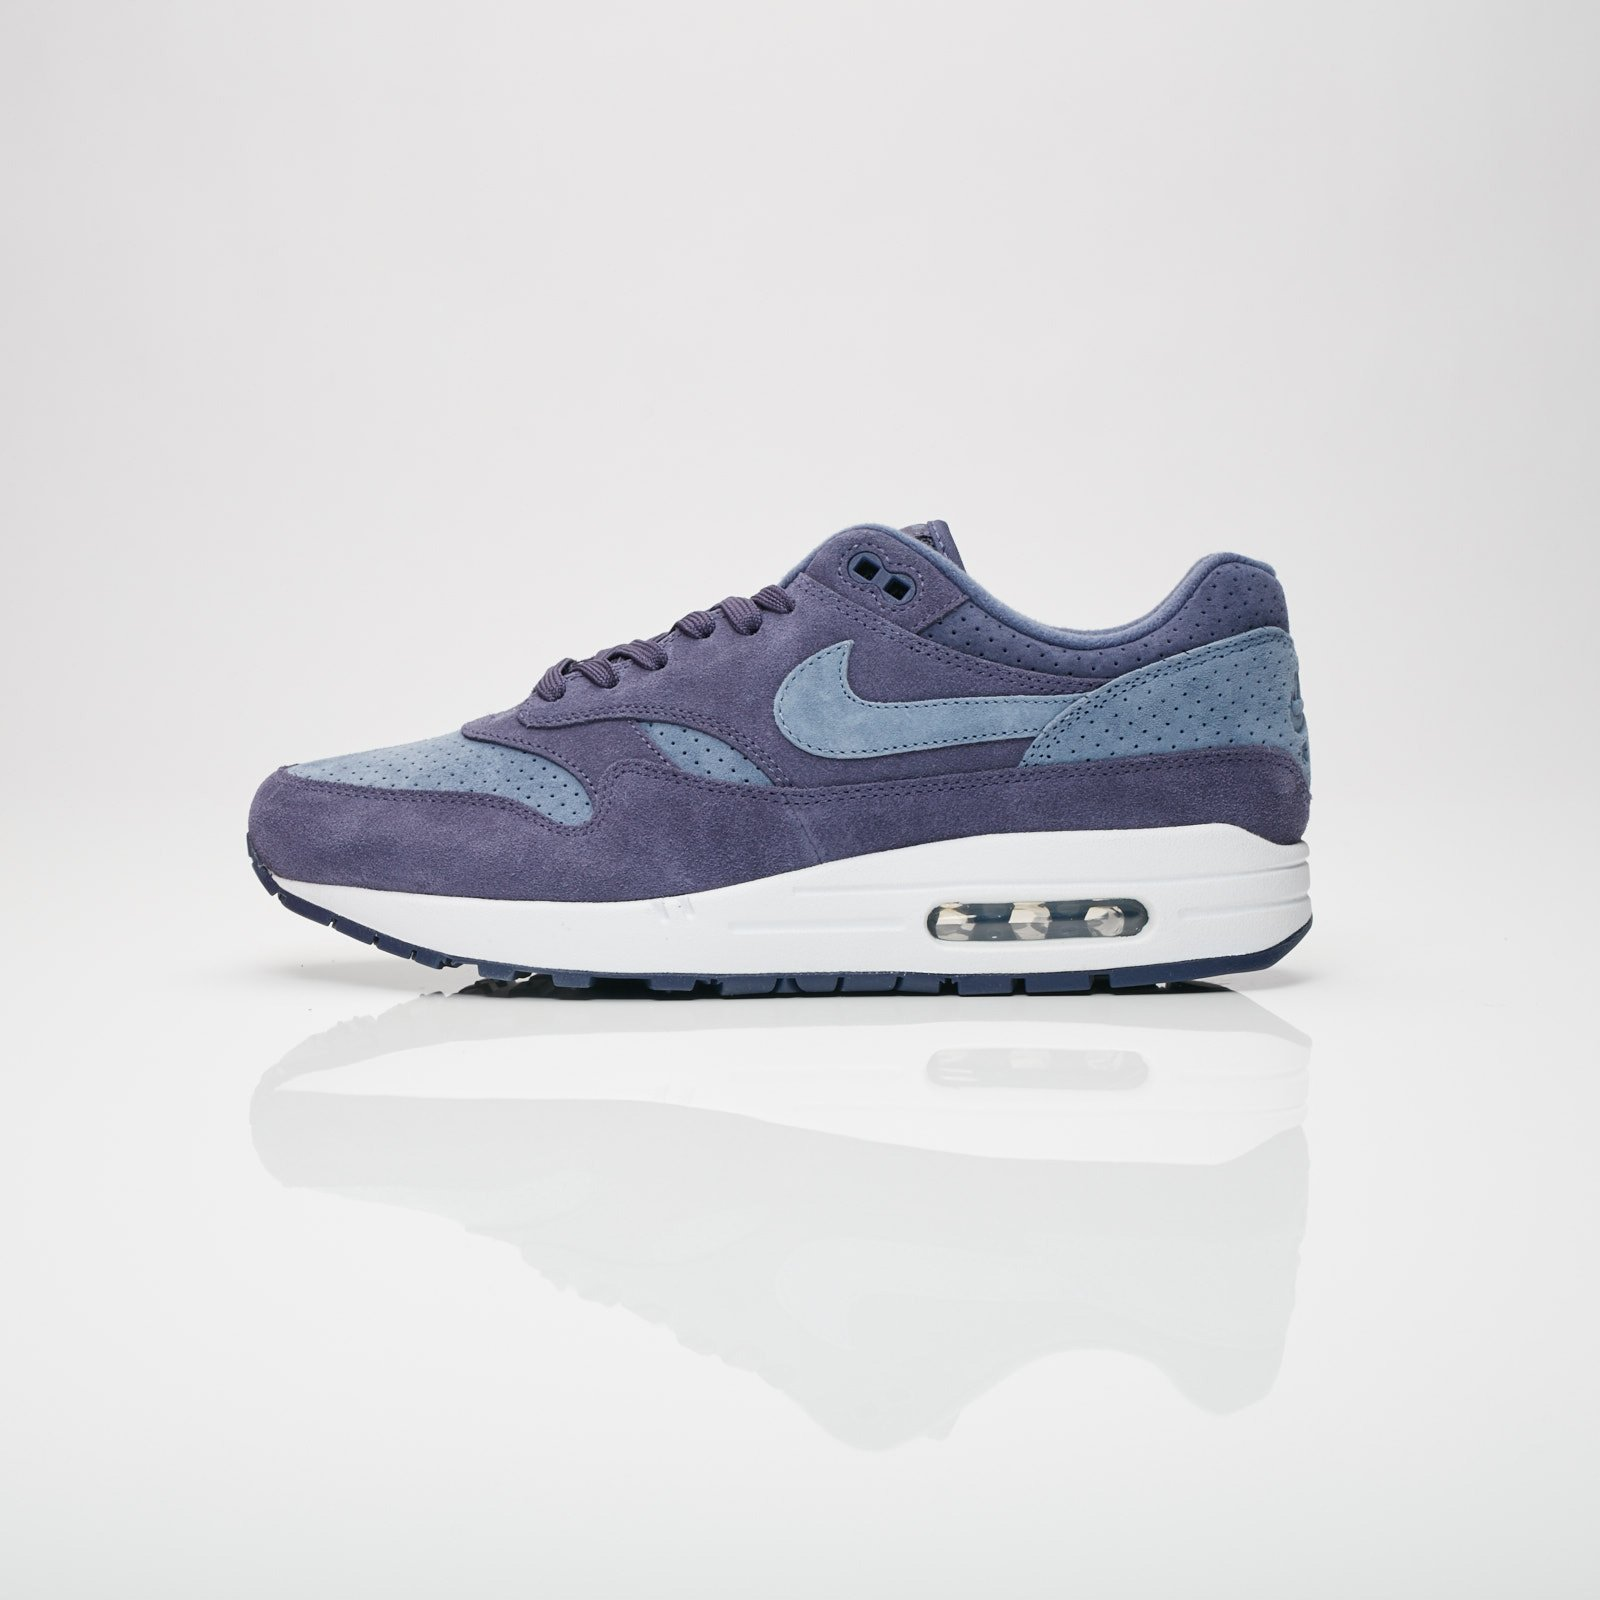 sneakers for cheap be553 d6eb4 Nike Air Max 1 Premium - 875844-501 - Sneakersnstuff   sneakers    streetwear online since 1999